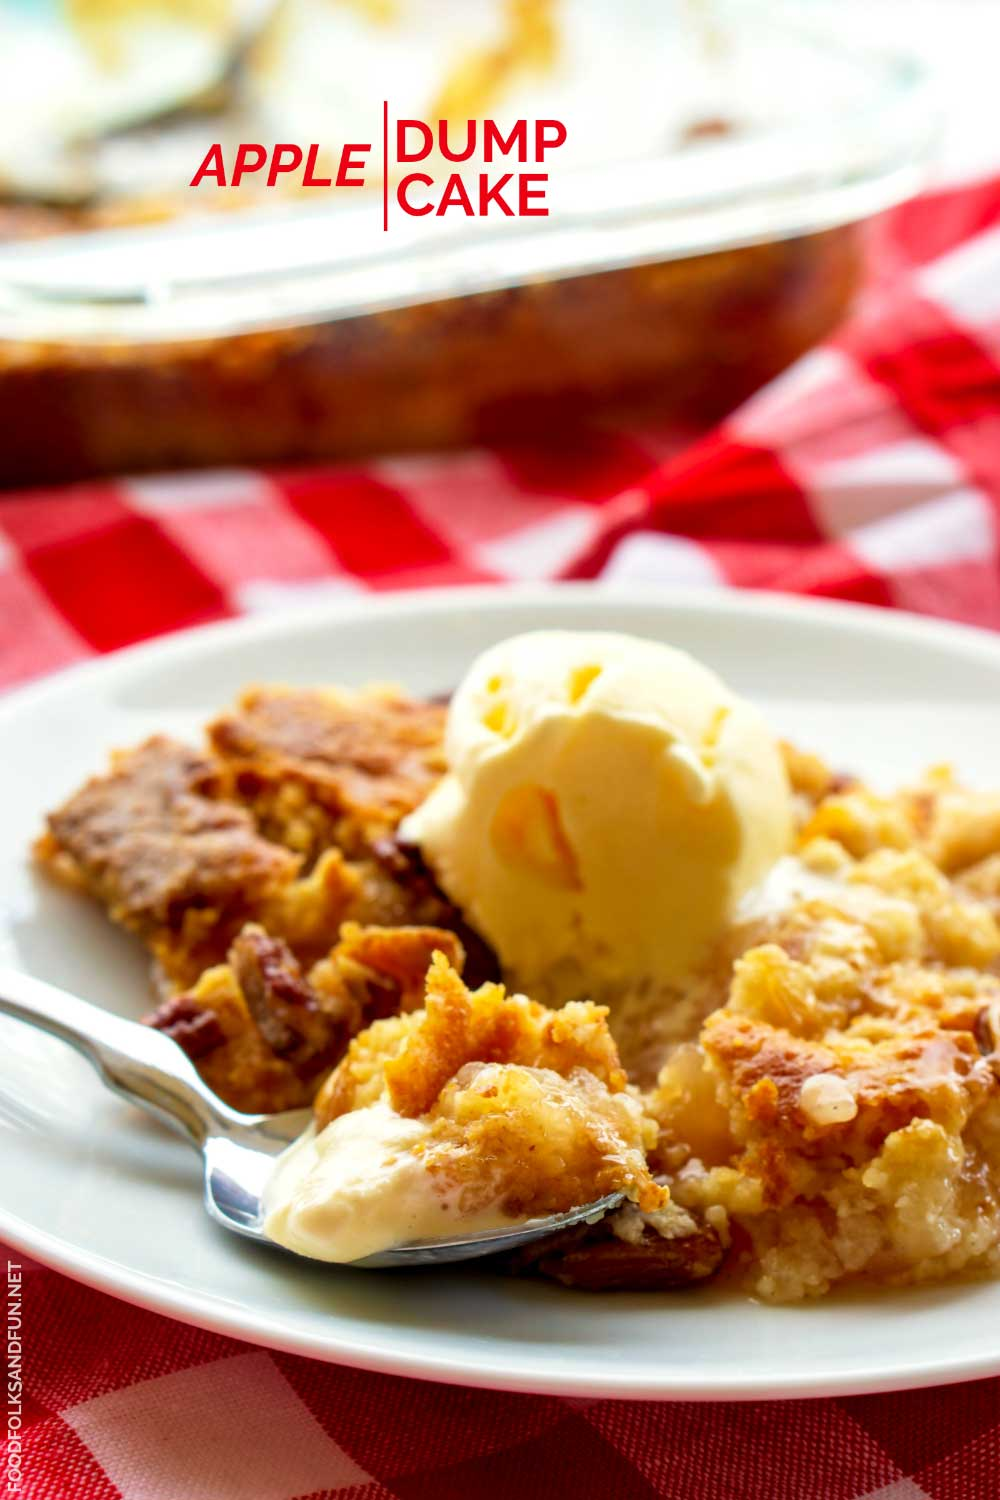 Dump cake on a white plate with a spoon digging into it.